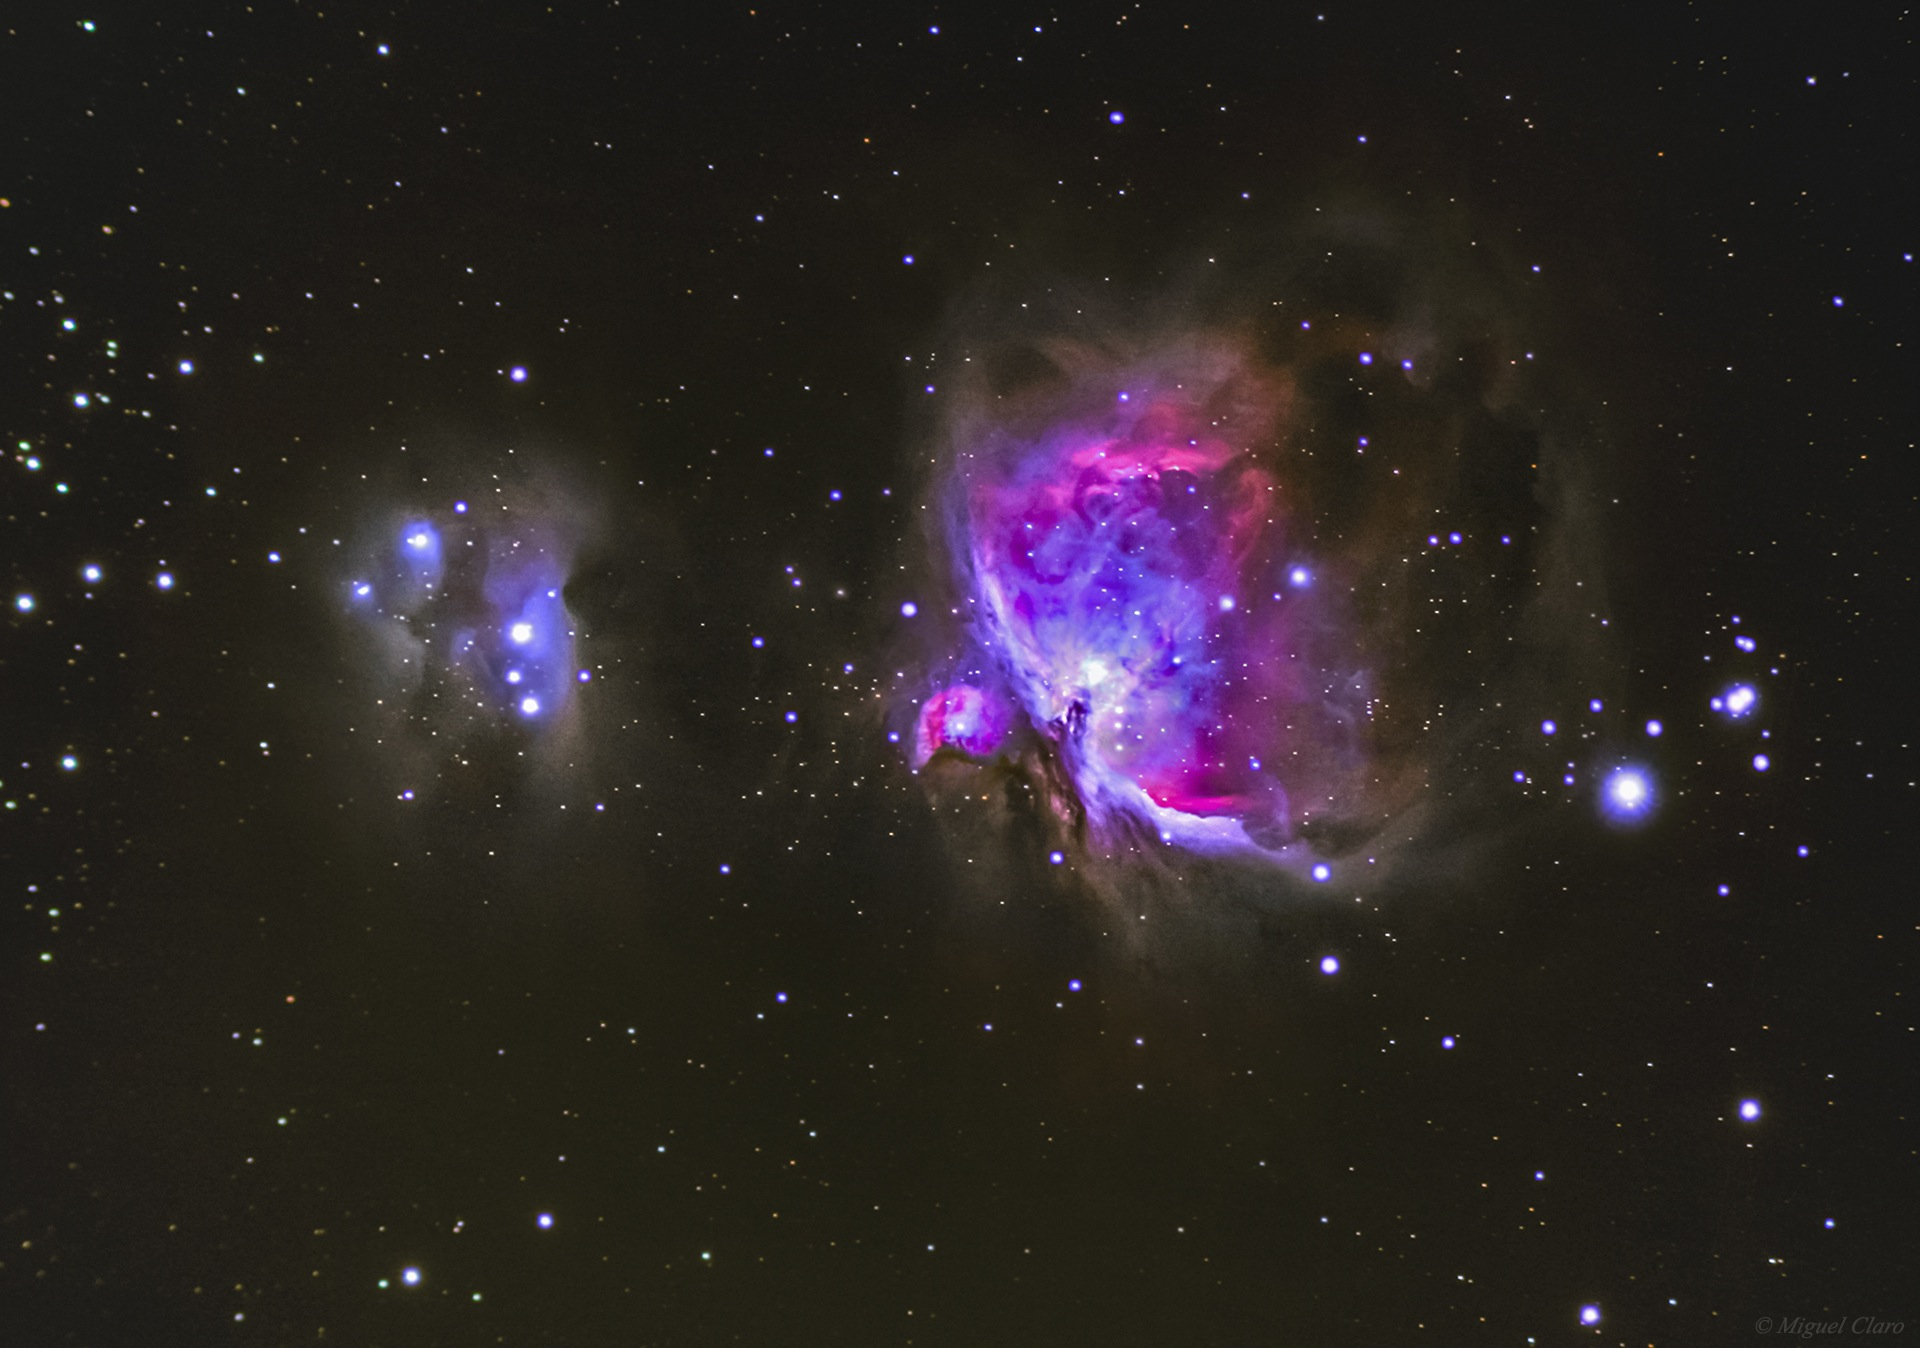 Amateur Astronomer Snaps Stunning Orion Nebula View with Portable Gear (Photo)